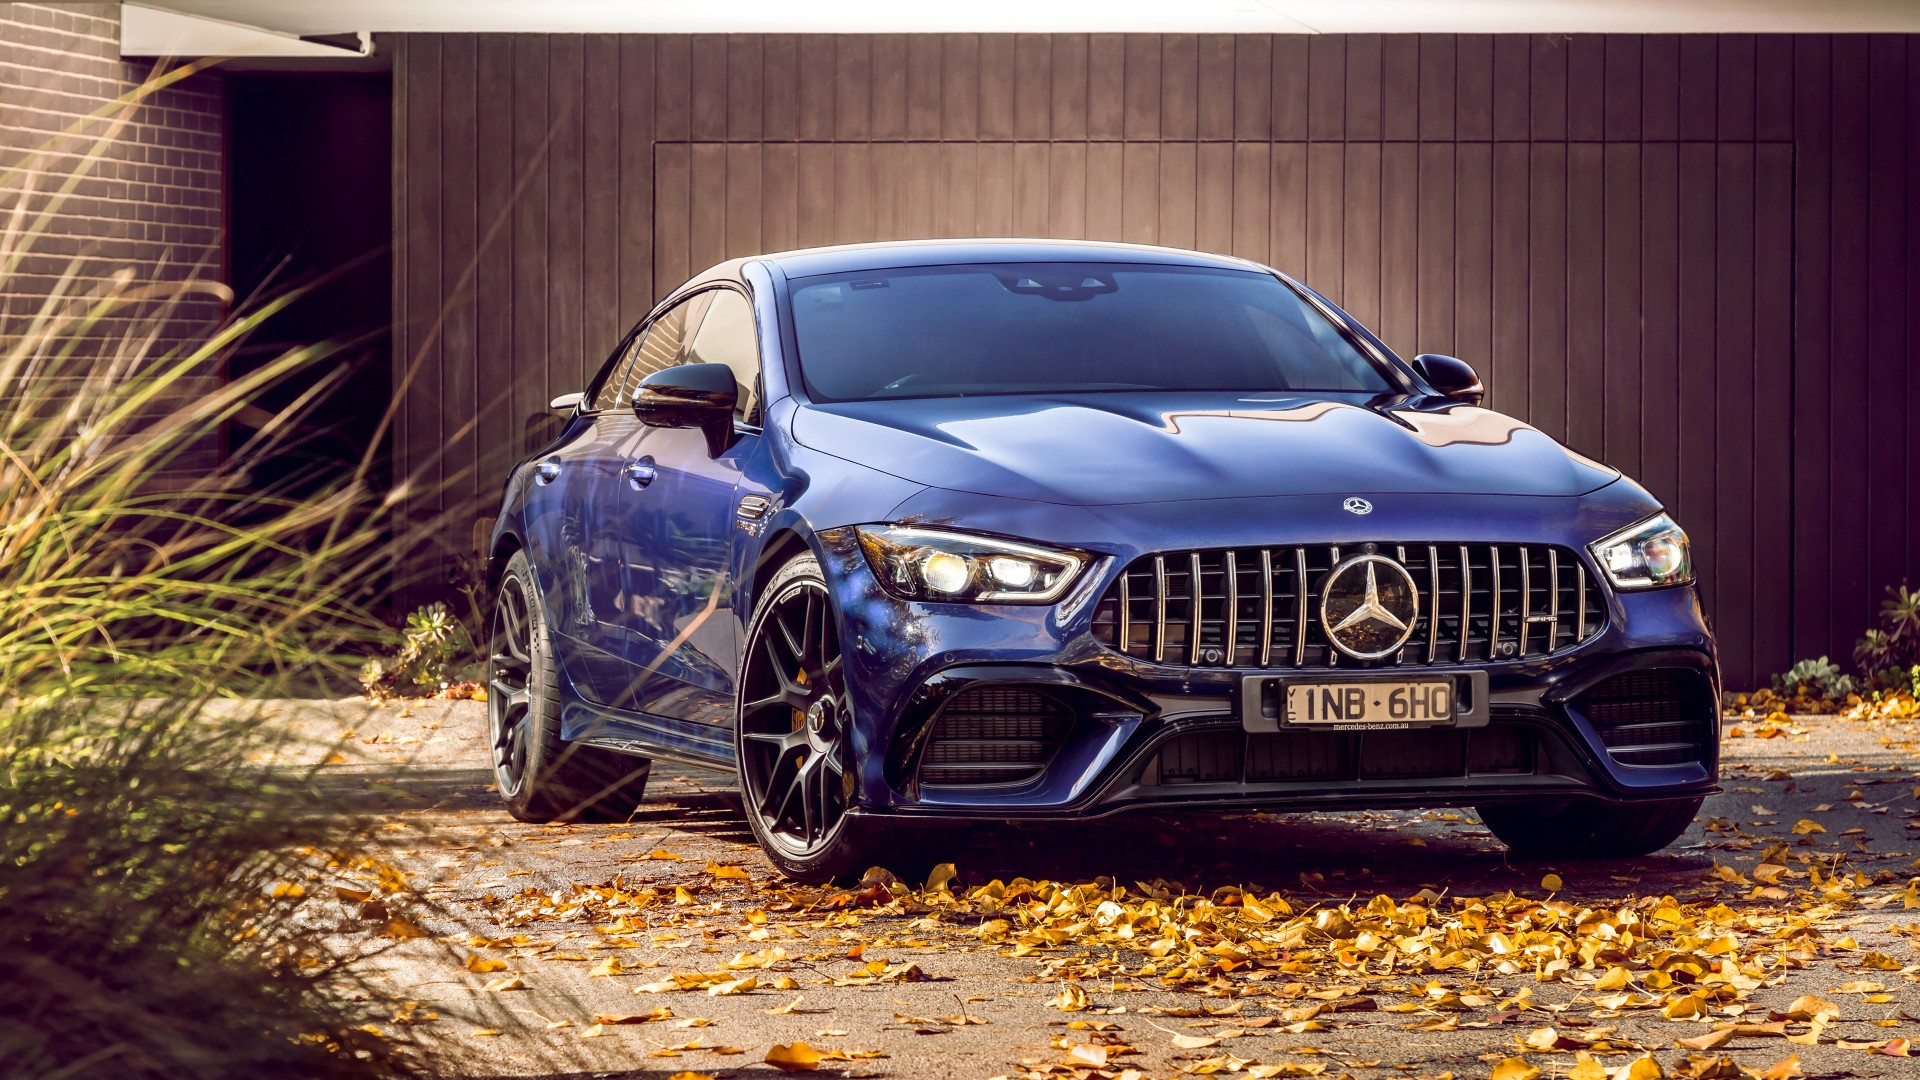 Mercedes Amg Gt 63 S 4matic 4 Door Coupe 2019 4k 2